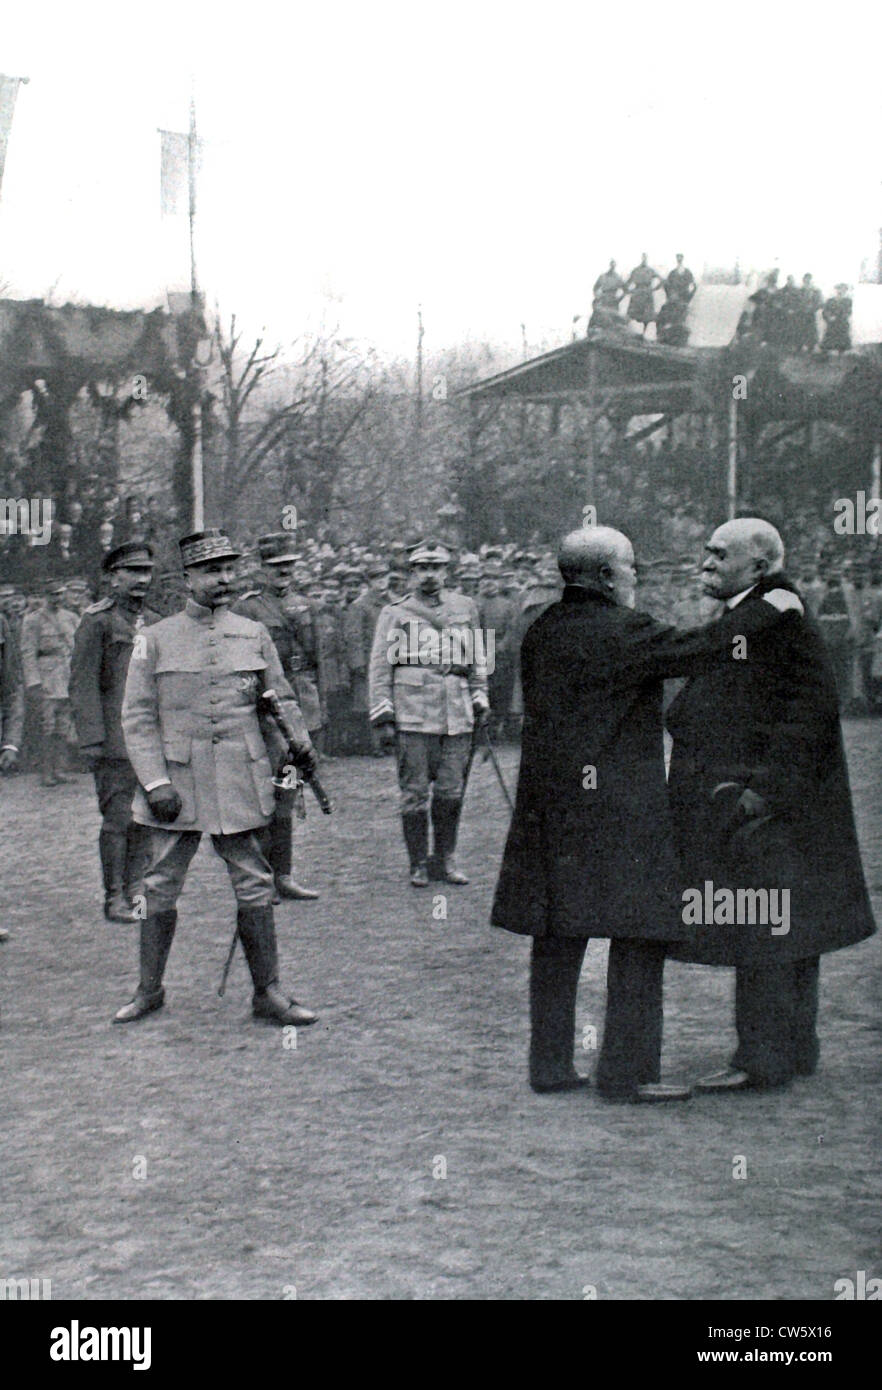 Marshal Pétain is presented with the Command Baton (December 14, 1918) - Stock Image